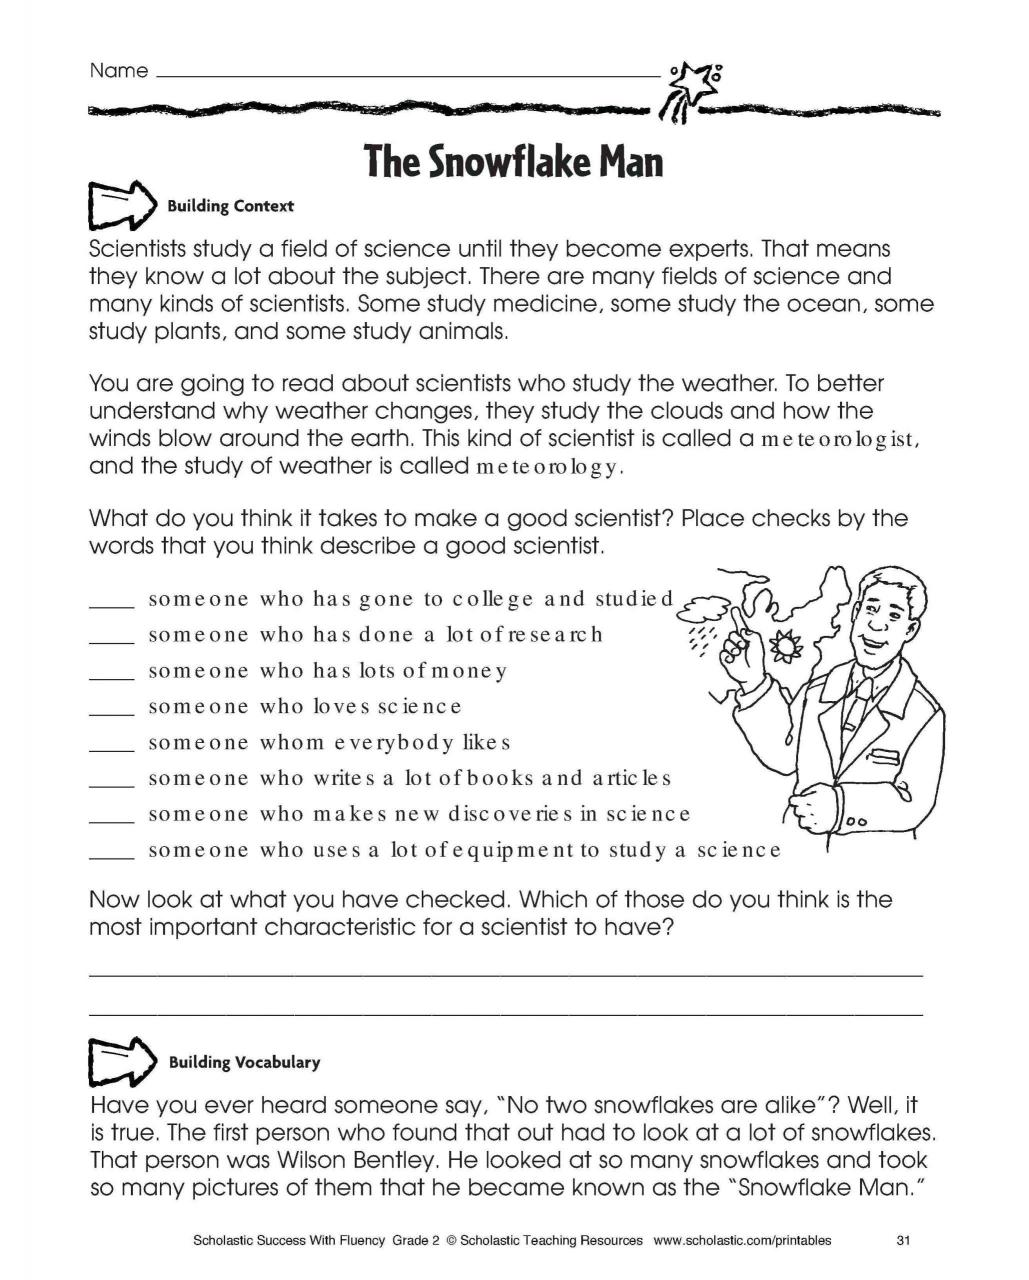 Year 5 Reading Comprehension Worksheets Free